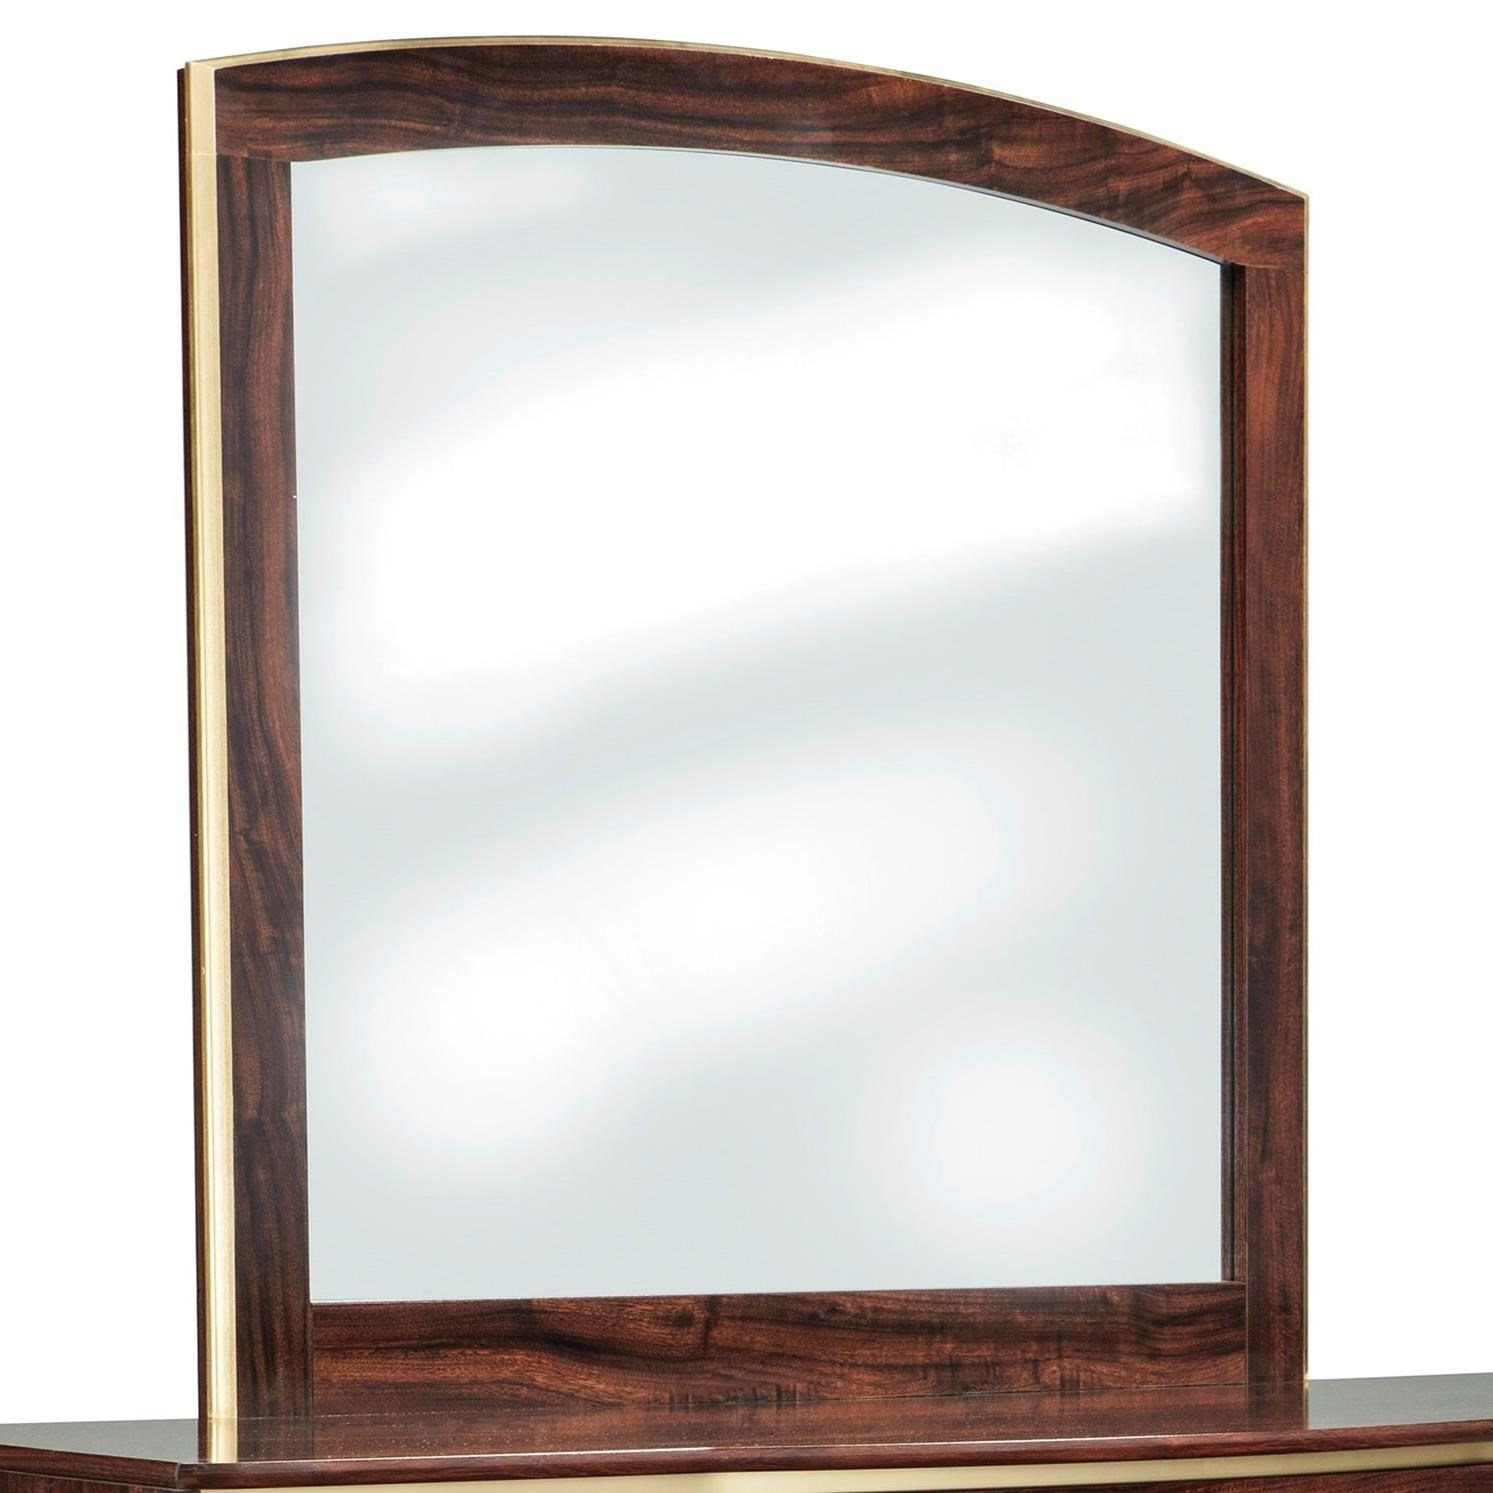 Signature Design by Ashley Lenmara Bedroom Mirror - Item Number: B247-36